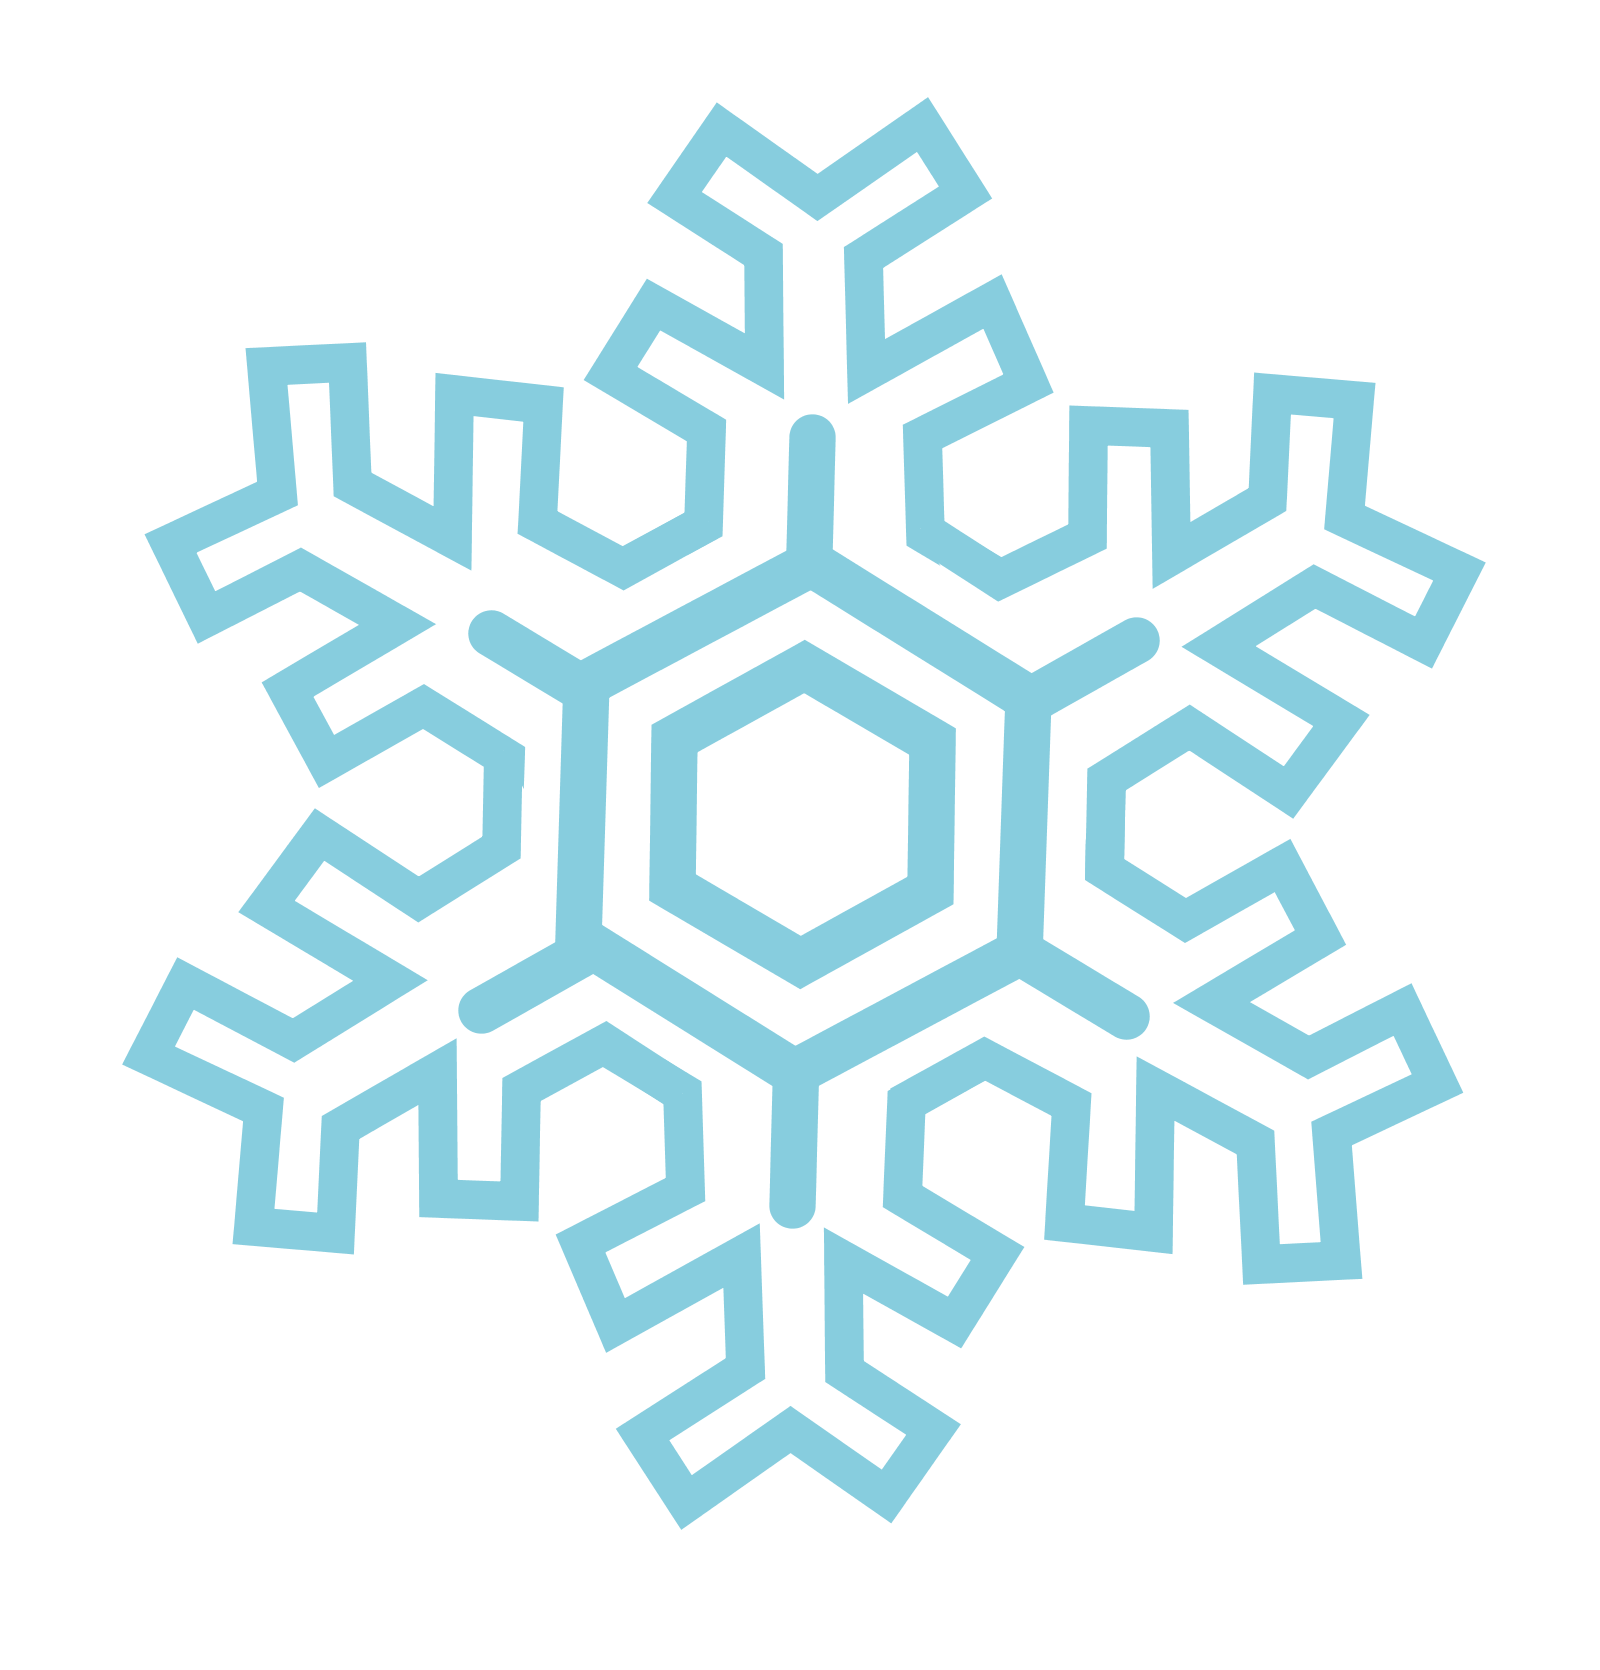 Snowflake nature wallpaper free clipart png royalty free library Snowflakes PNG images free download, snowflake PNG png royalty free library